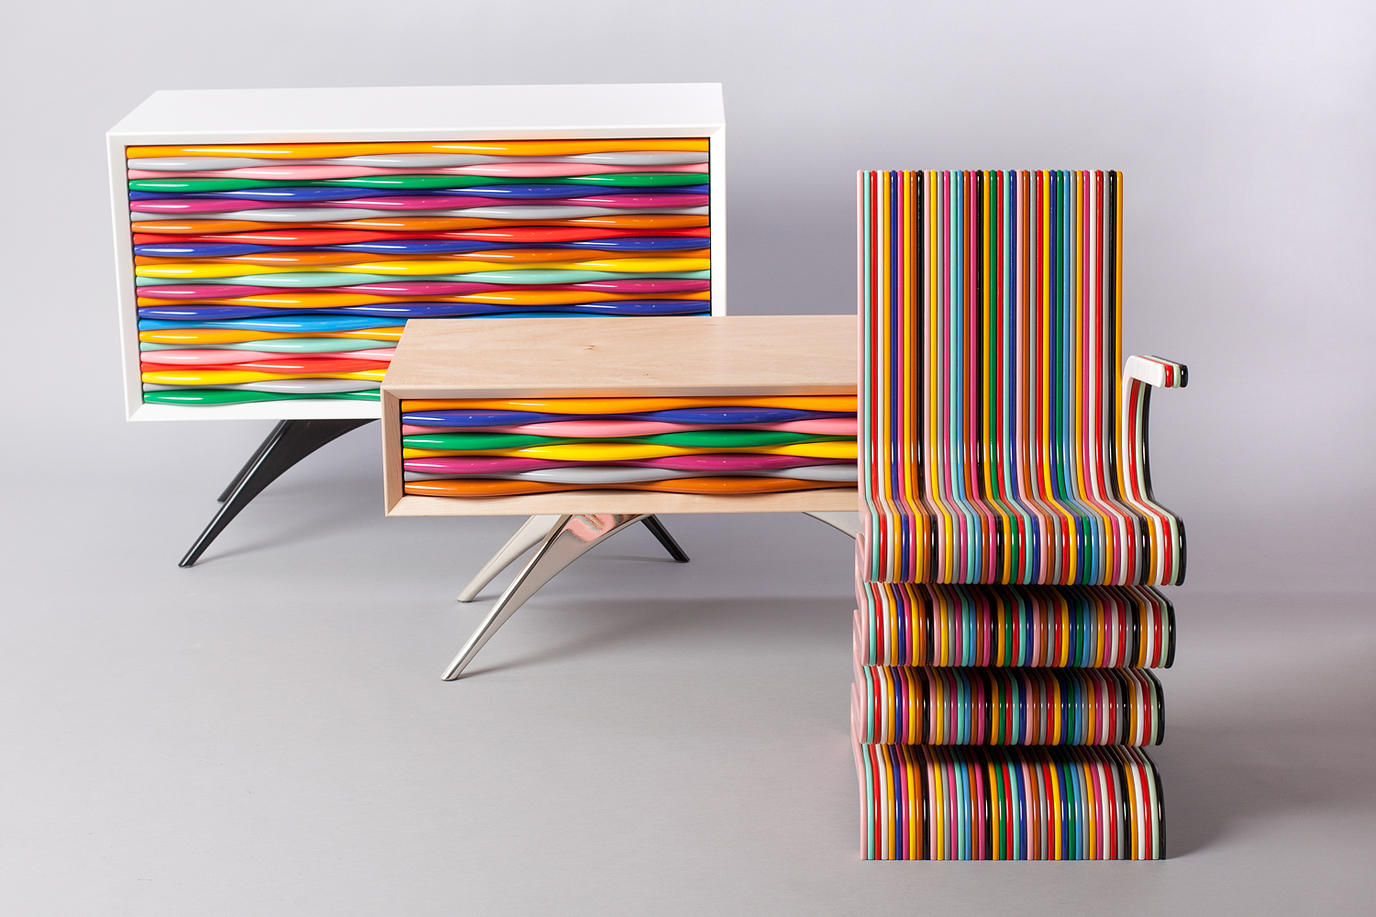 Design pop mobili multicolor di anthony hartley for Mobili design